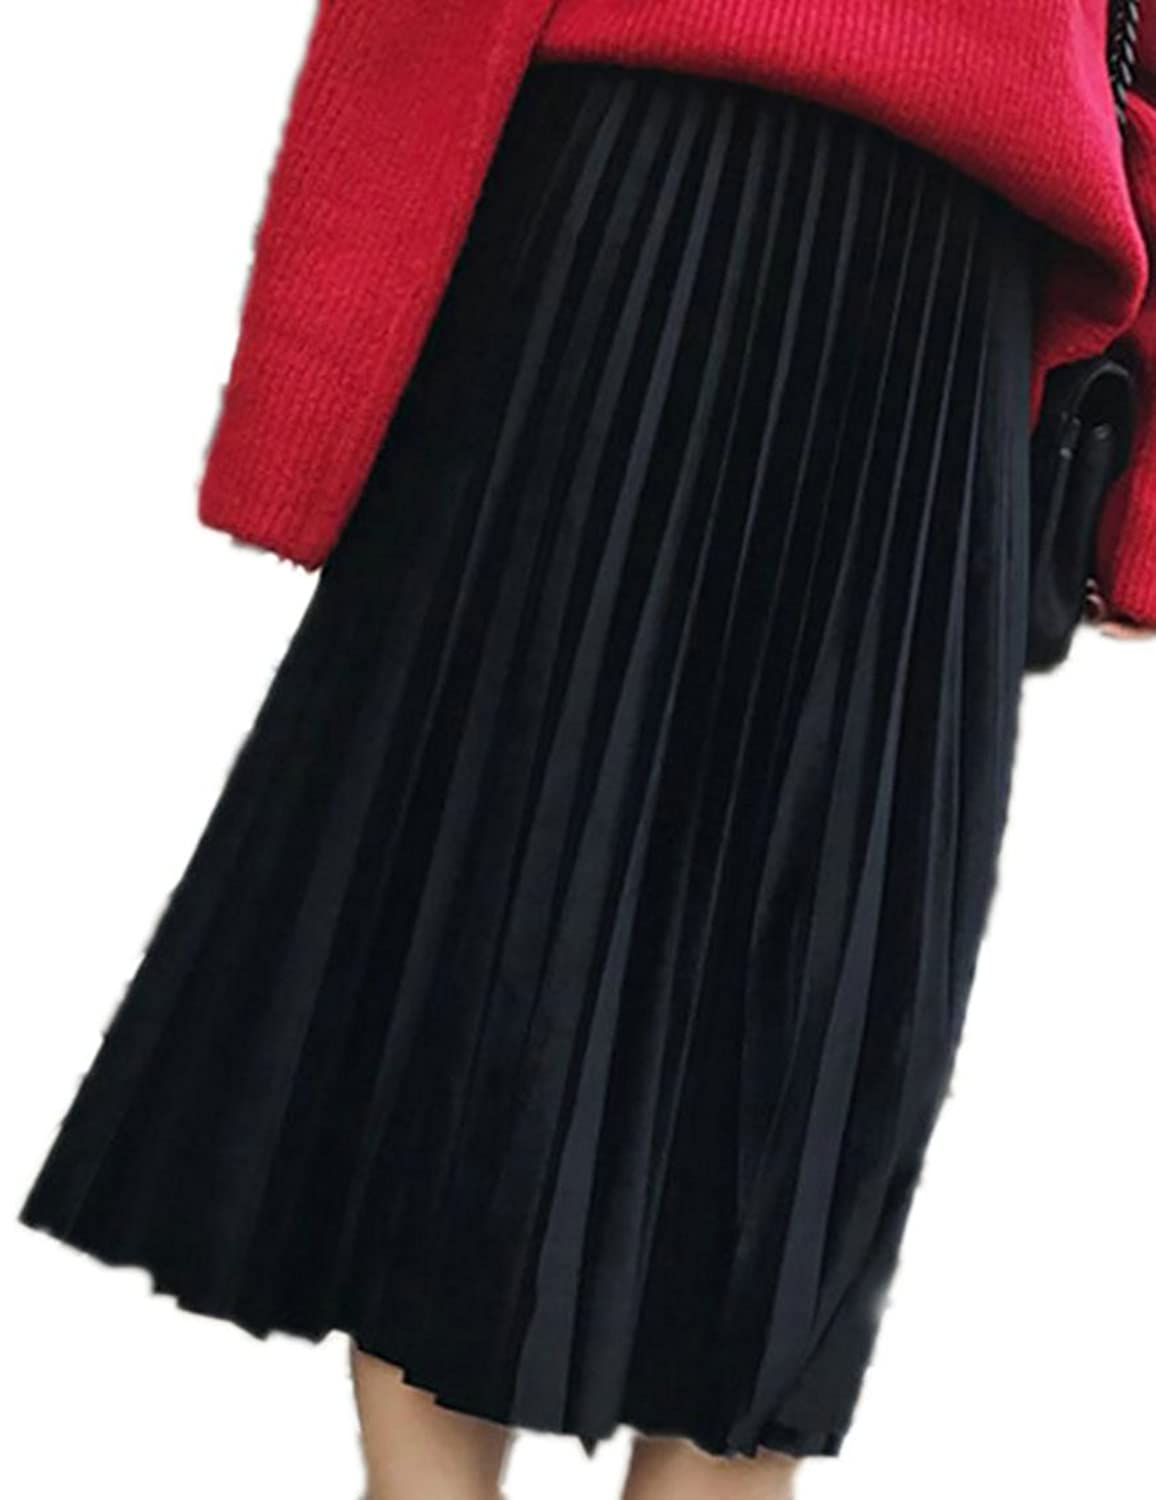 SYTX Womens Casual Plus Size Pure Color Elastic Waist Ruched Midi Skirt Black 3XL